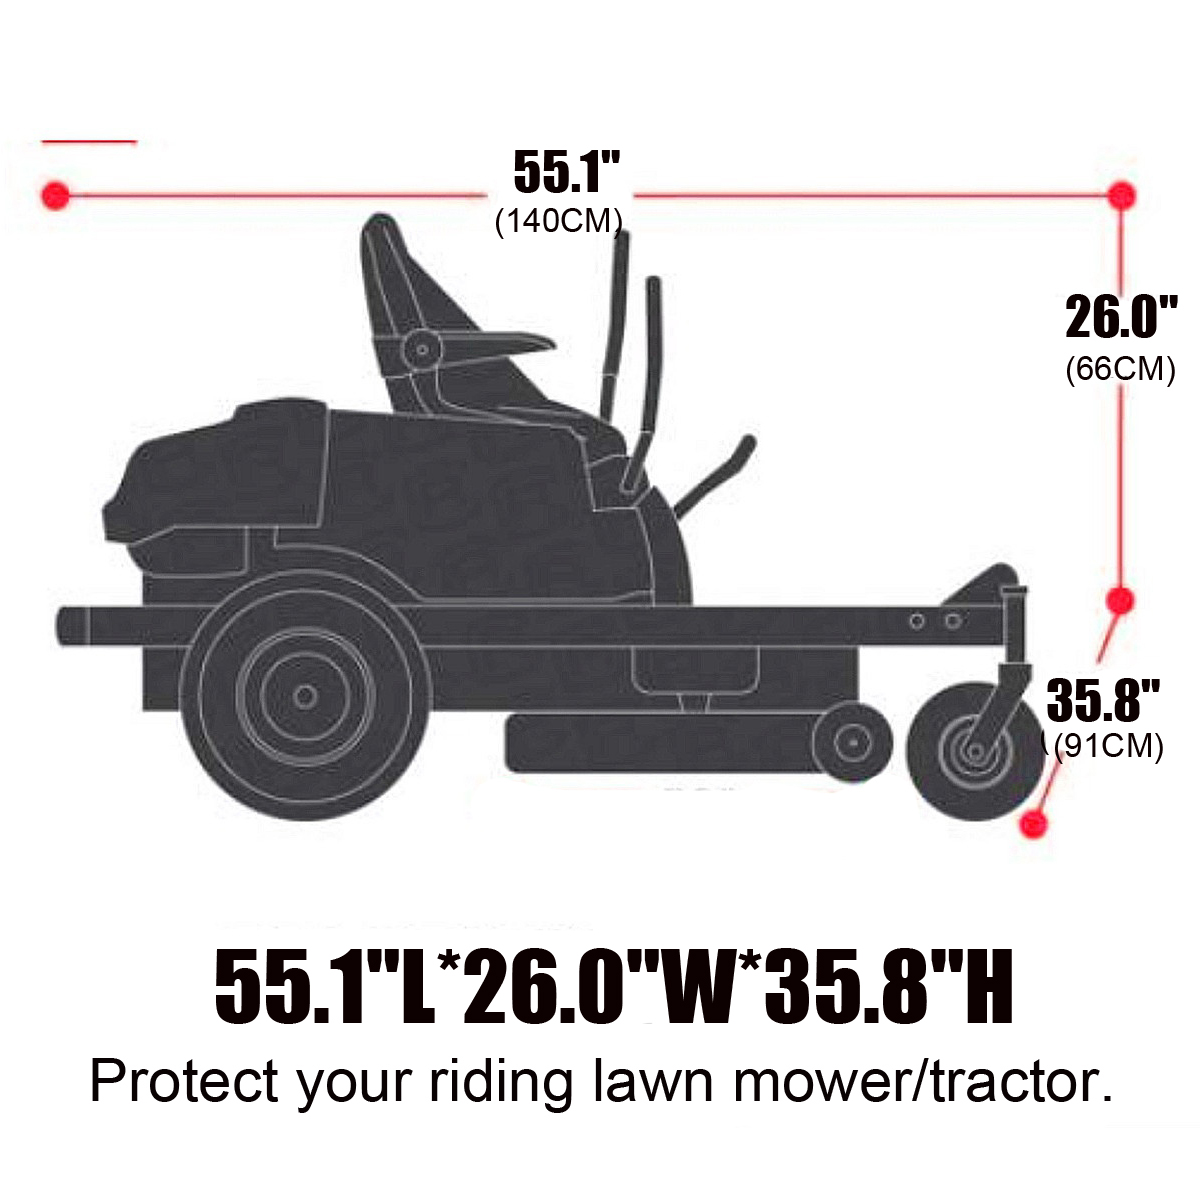 55.1x26.0x35.8 Waterproof Heavy Duty Universal Protection Lawn Tractor Cover Black 190D Polyester dDanke Riding Lawn Mower Cover